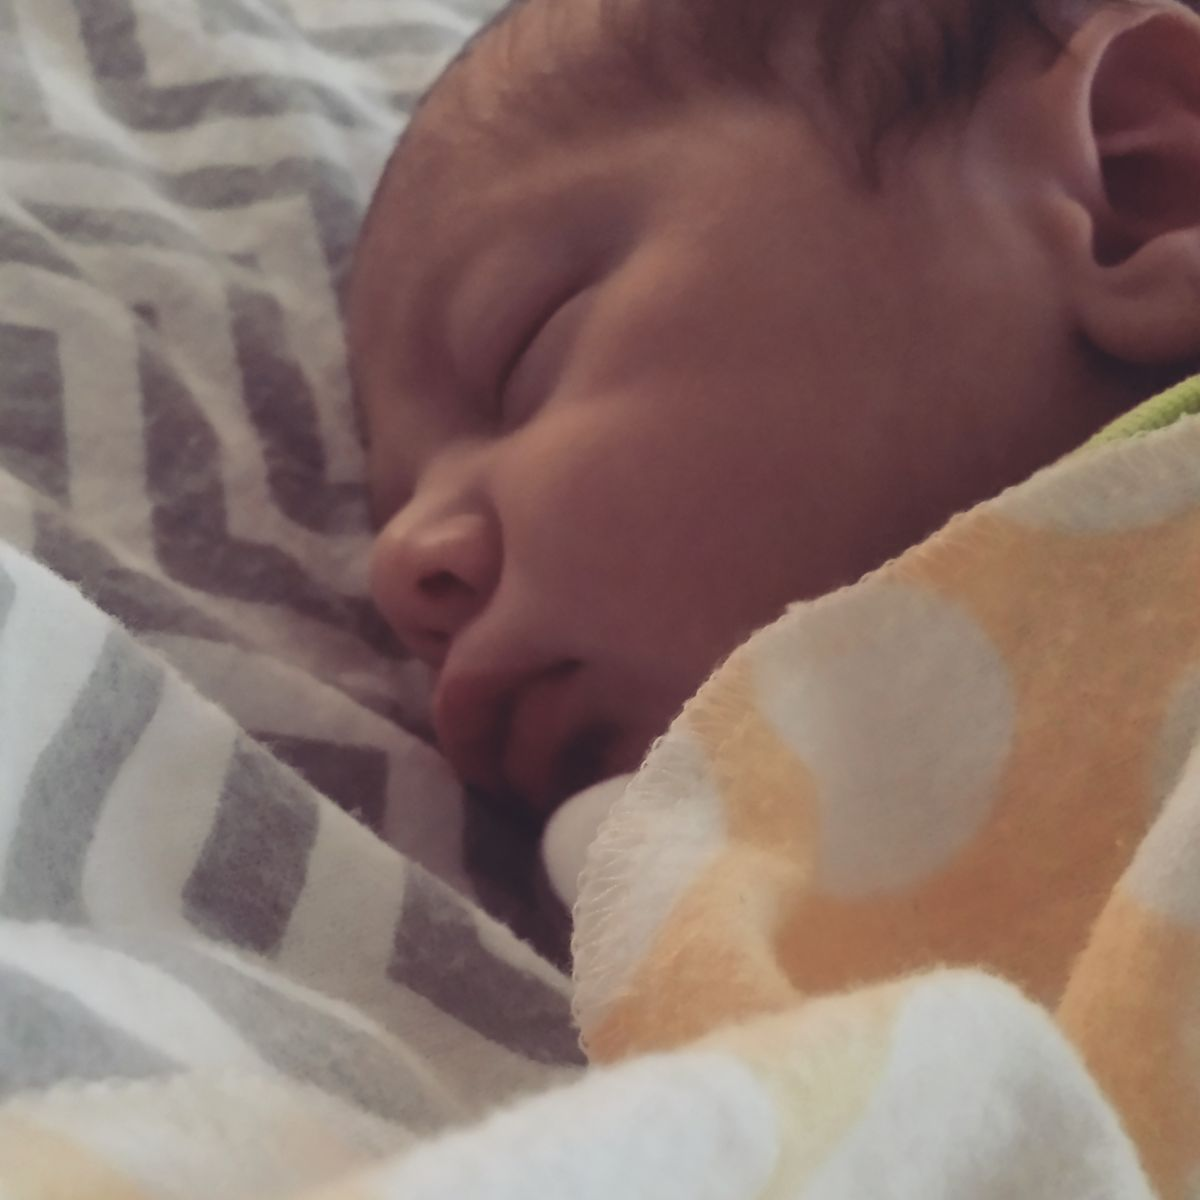 These are the precious & quiet moments. #GiGisBaby